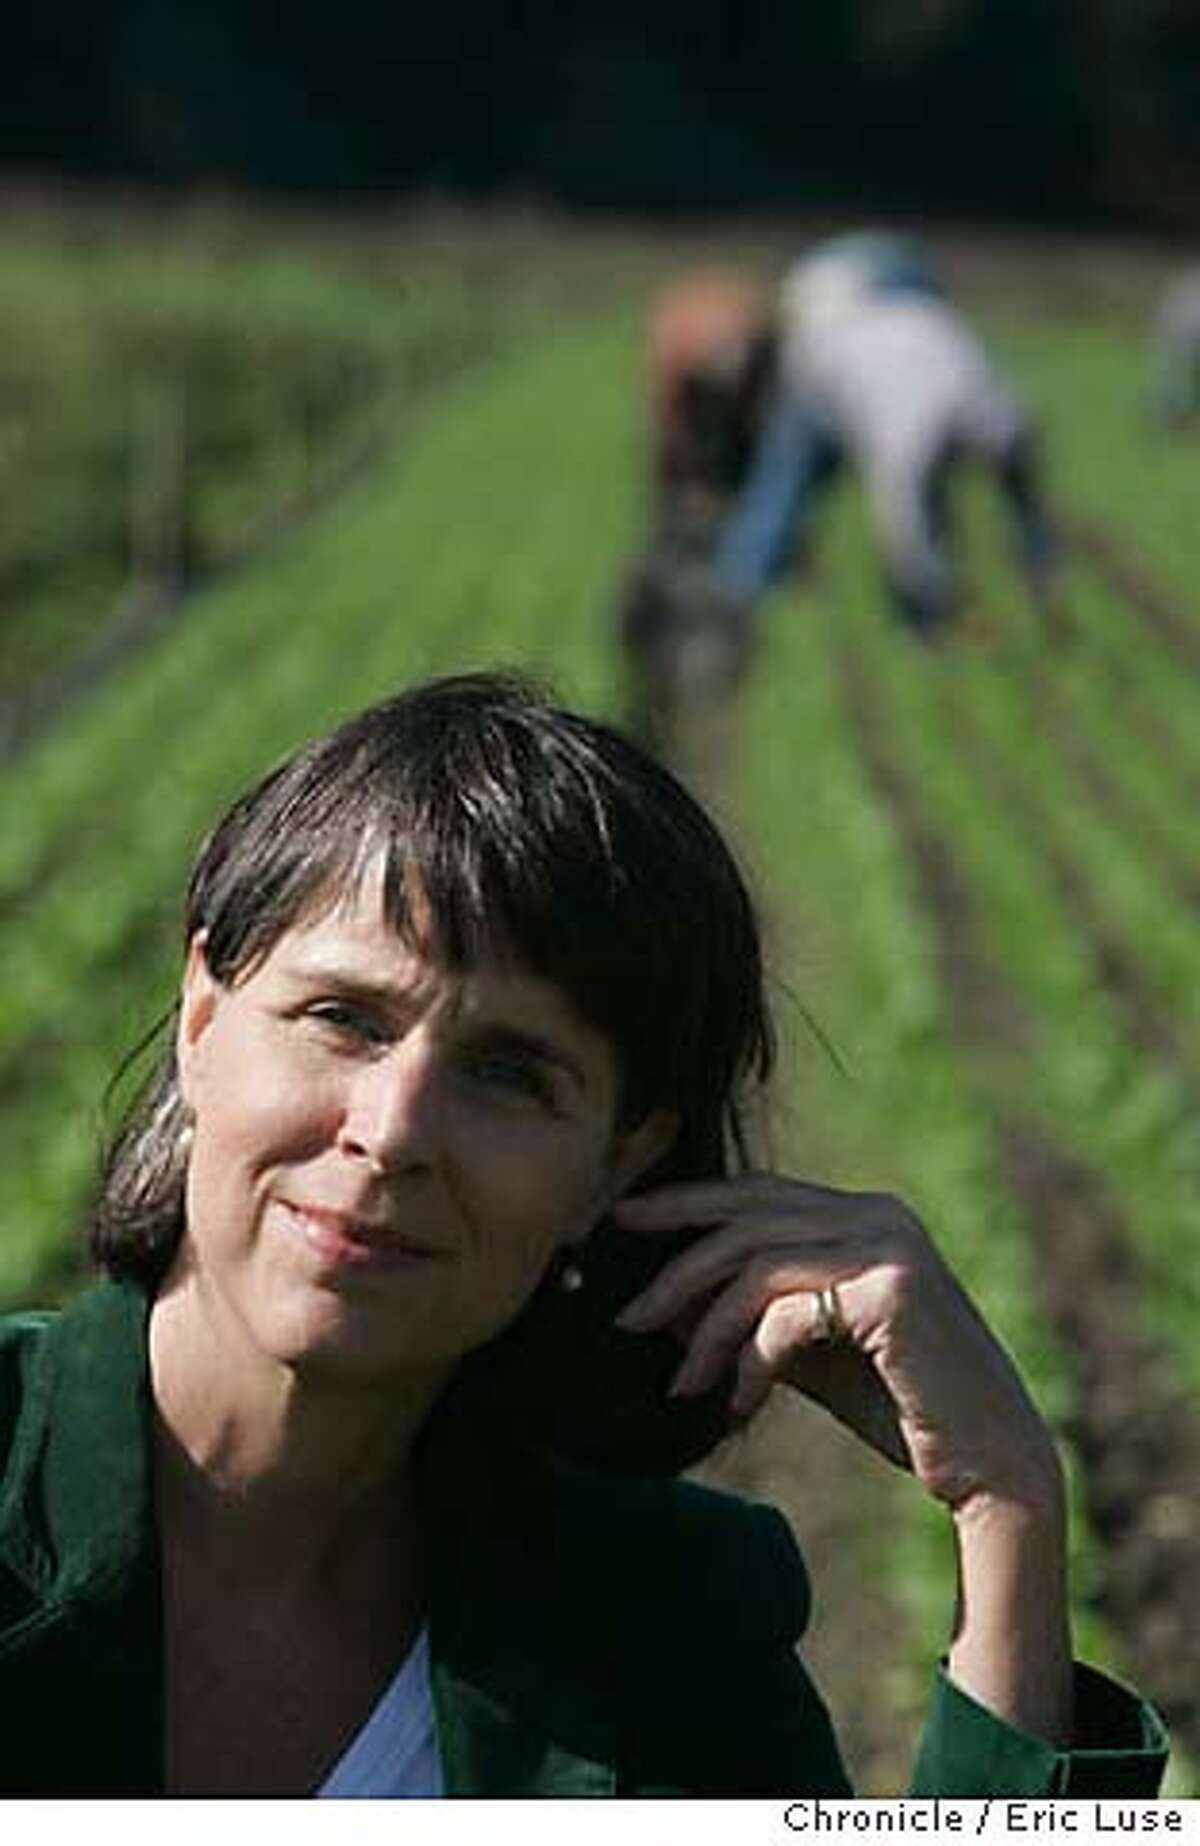 slowfood_056_el.jpg Deborah Koons Garcia Star Route Farms in Bolinas also holding a baby lettuce plant in this organic field. The name of her film is